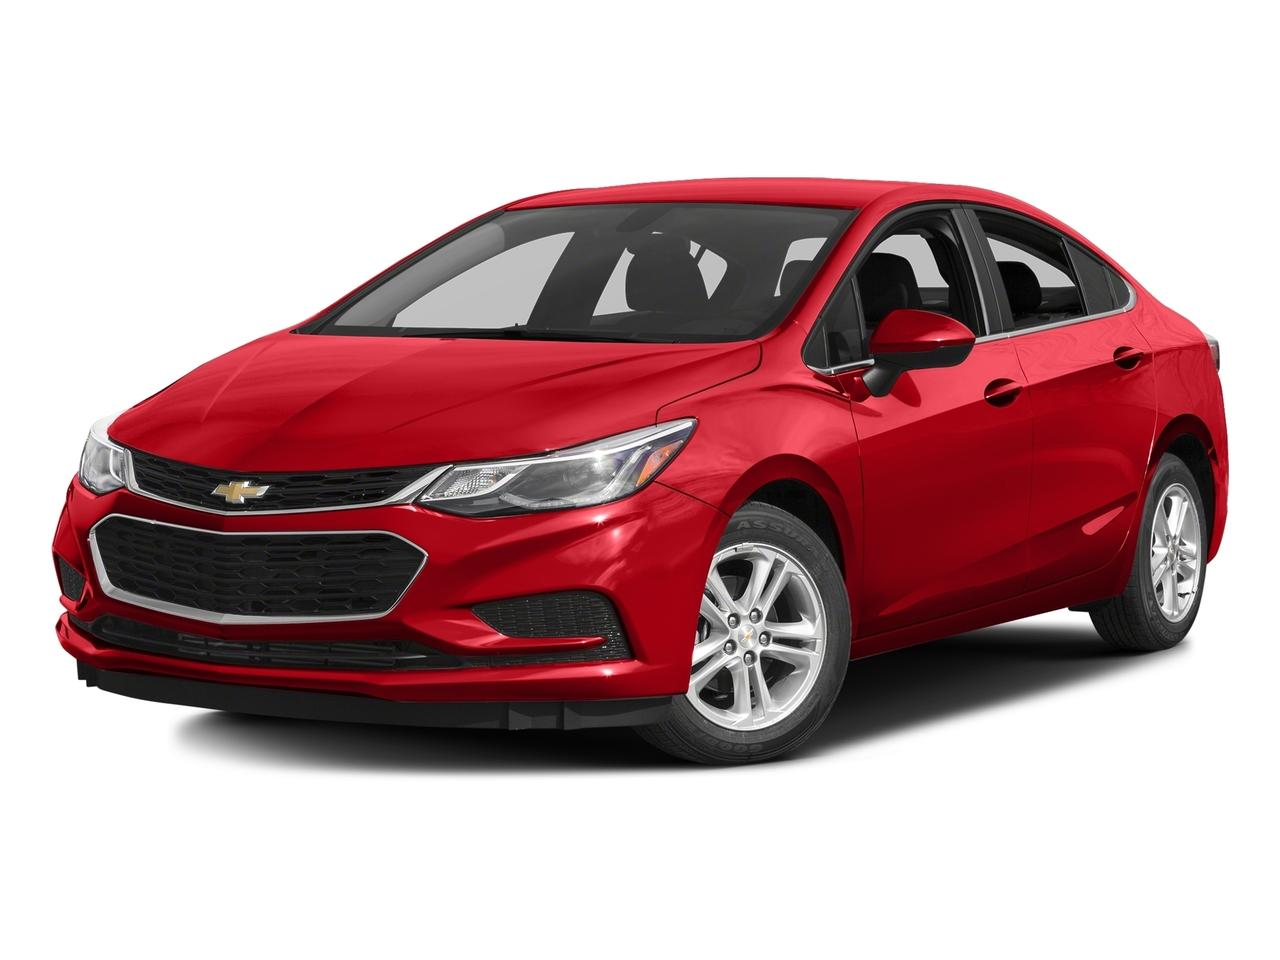 2017 Chevrolet Cruze Vehicle Photo in VINCENNES, IN 47591-5519